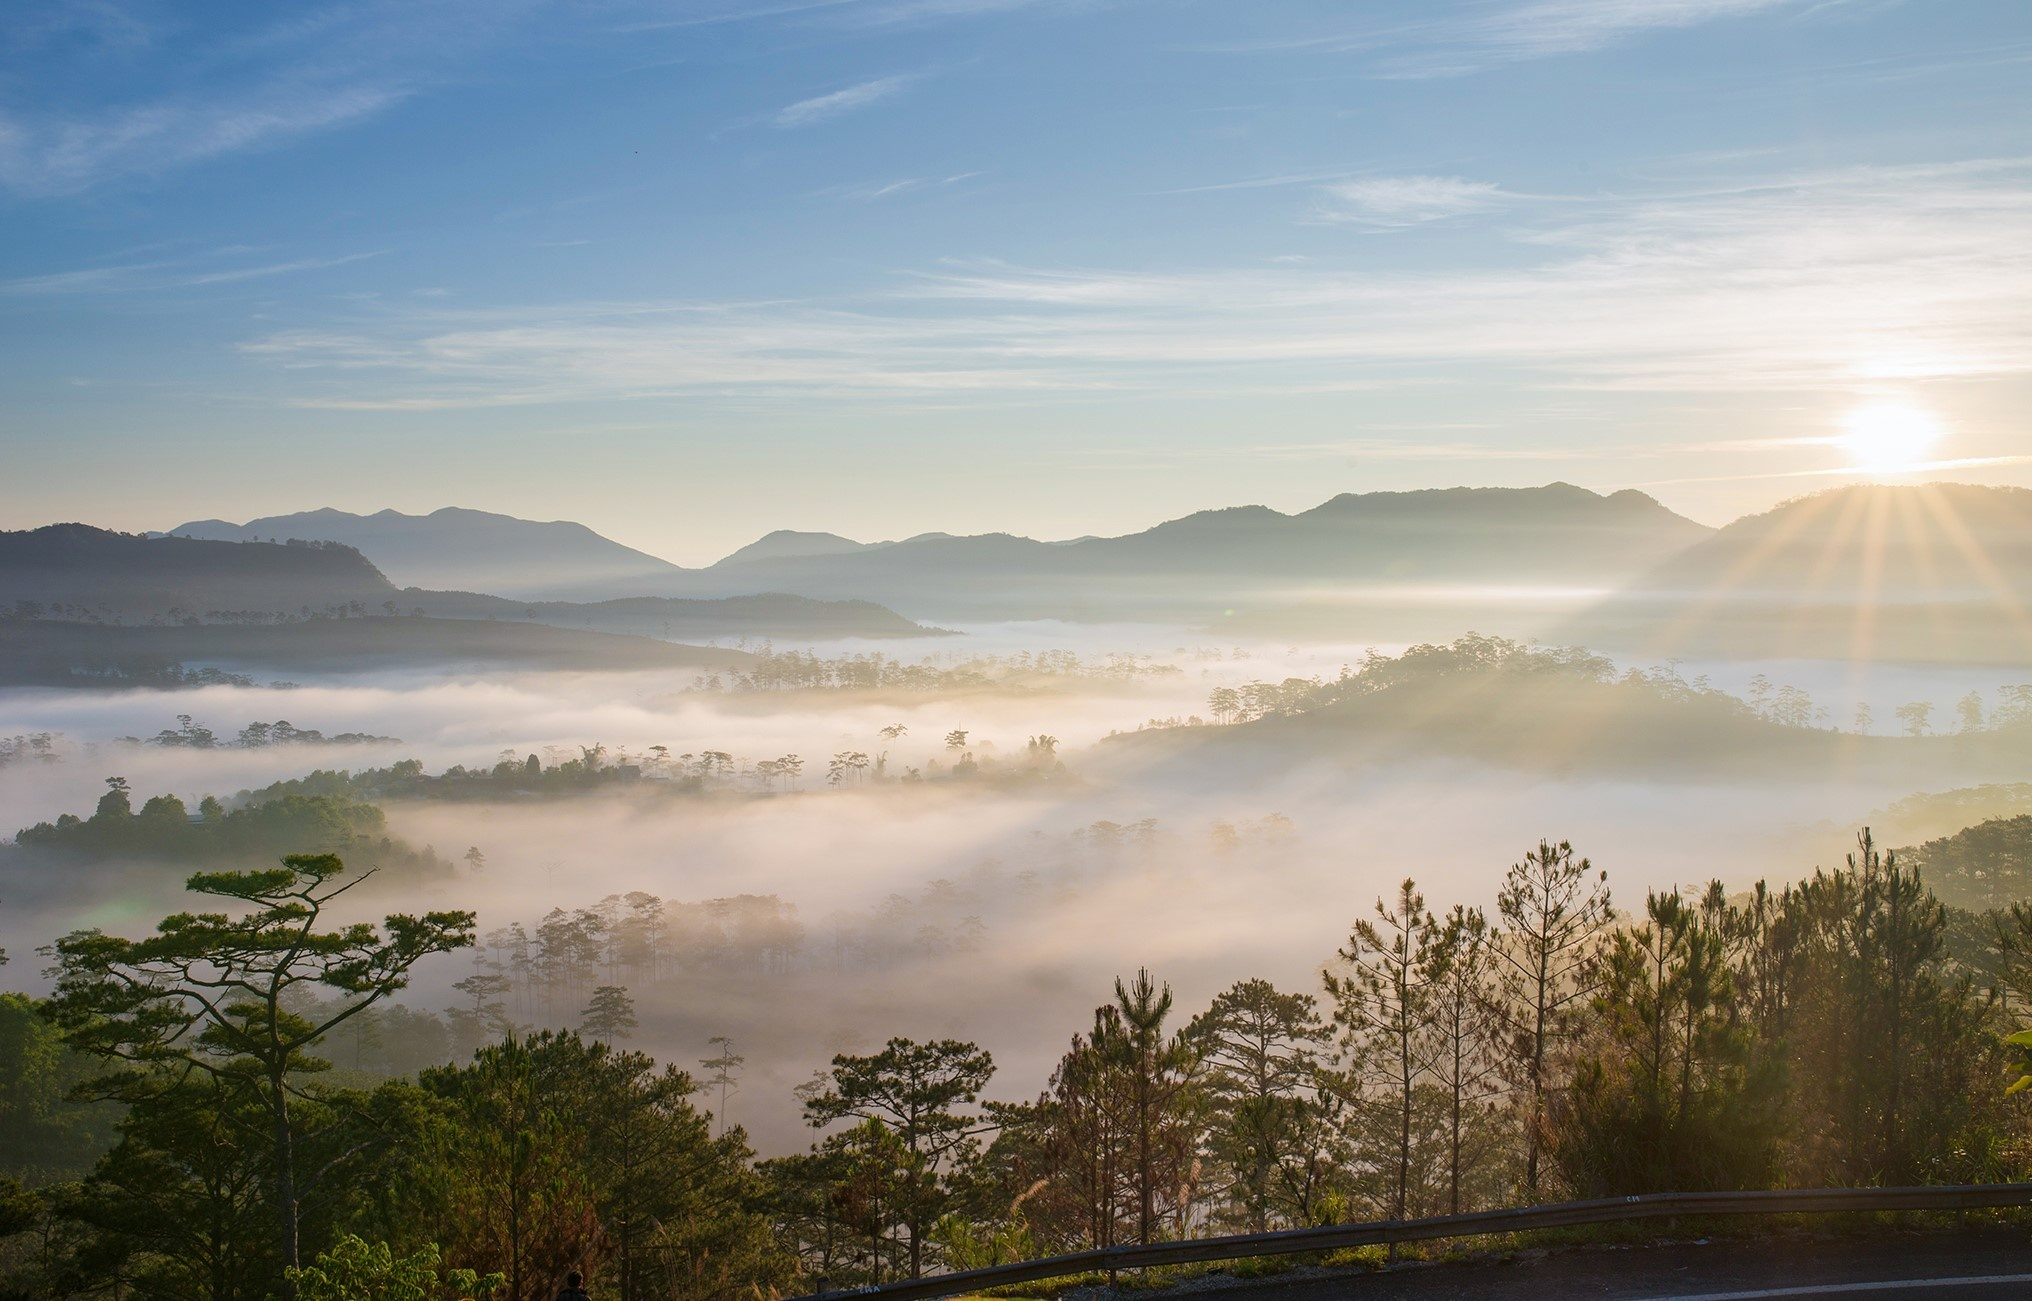 Nam moi ghe Da Lat, ngam thanh pho chim trong suong hinh anh 8